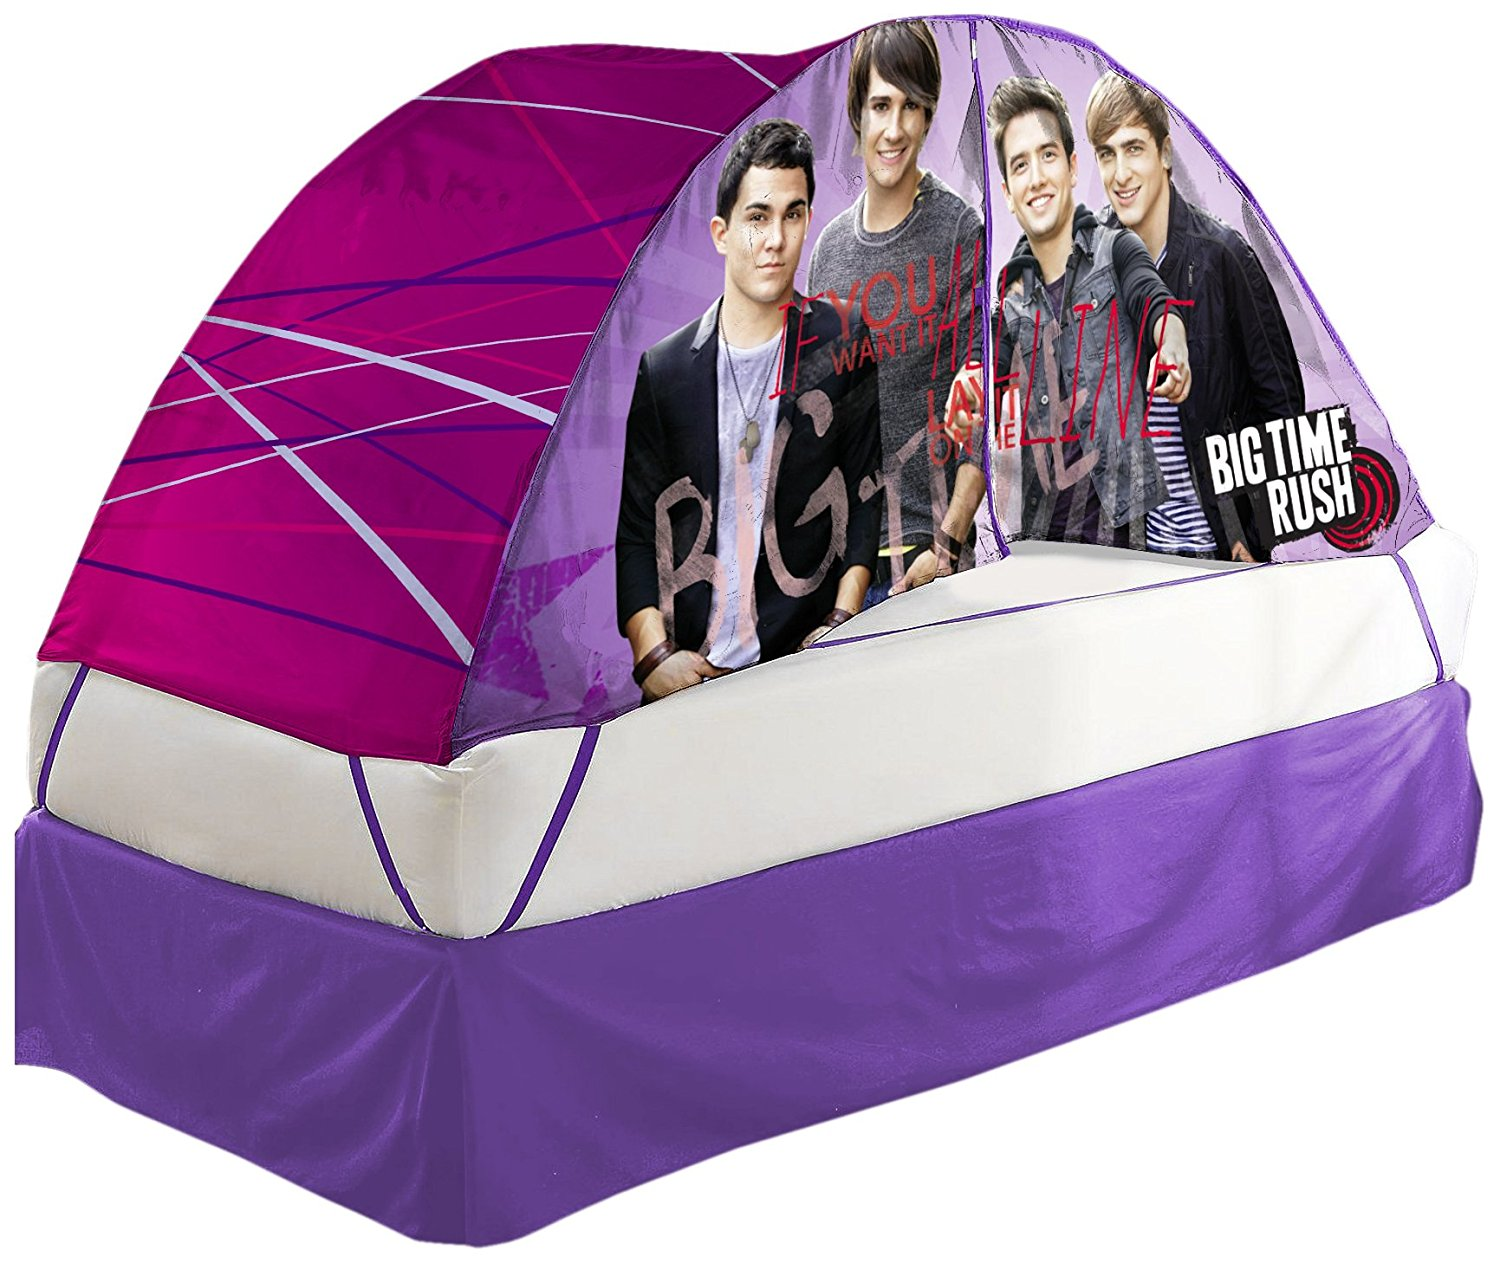 Nickelodeon Big Time Rush Bed Tent with Pushlight Assortment by